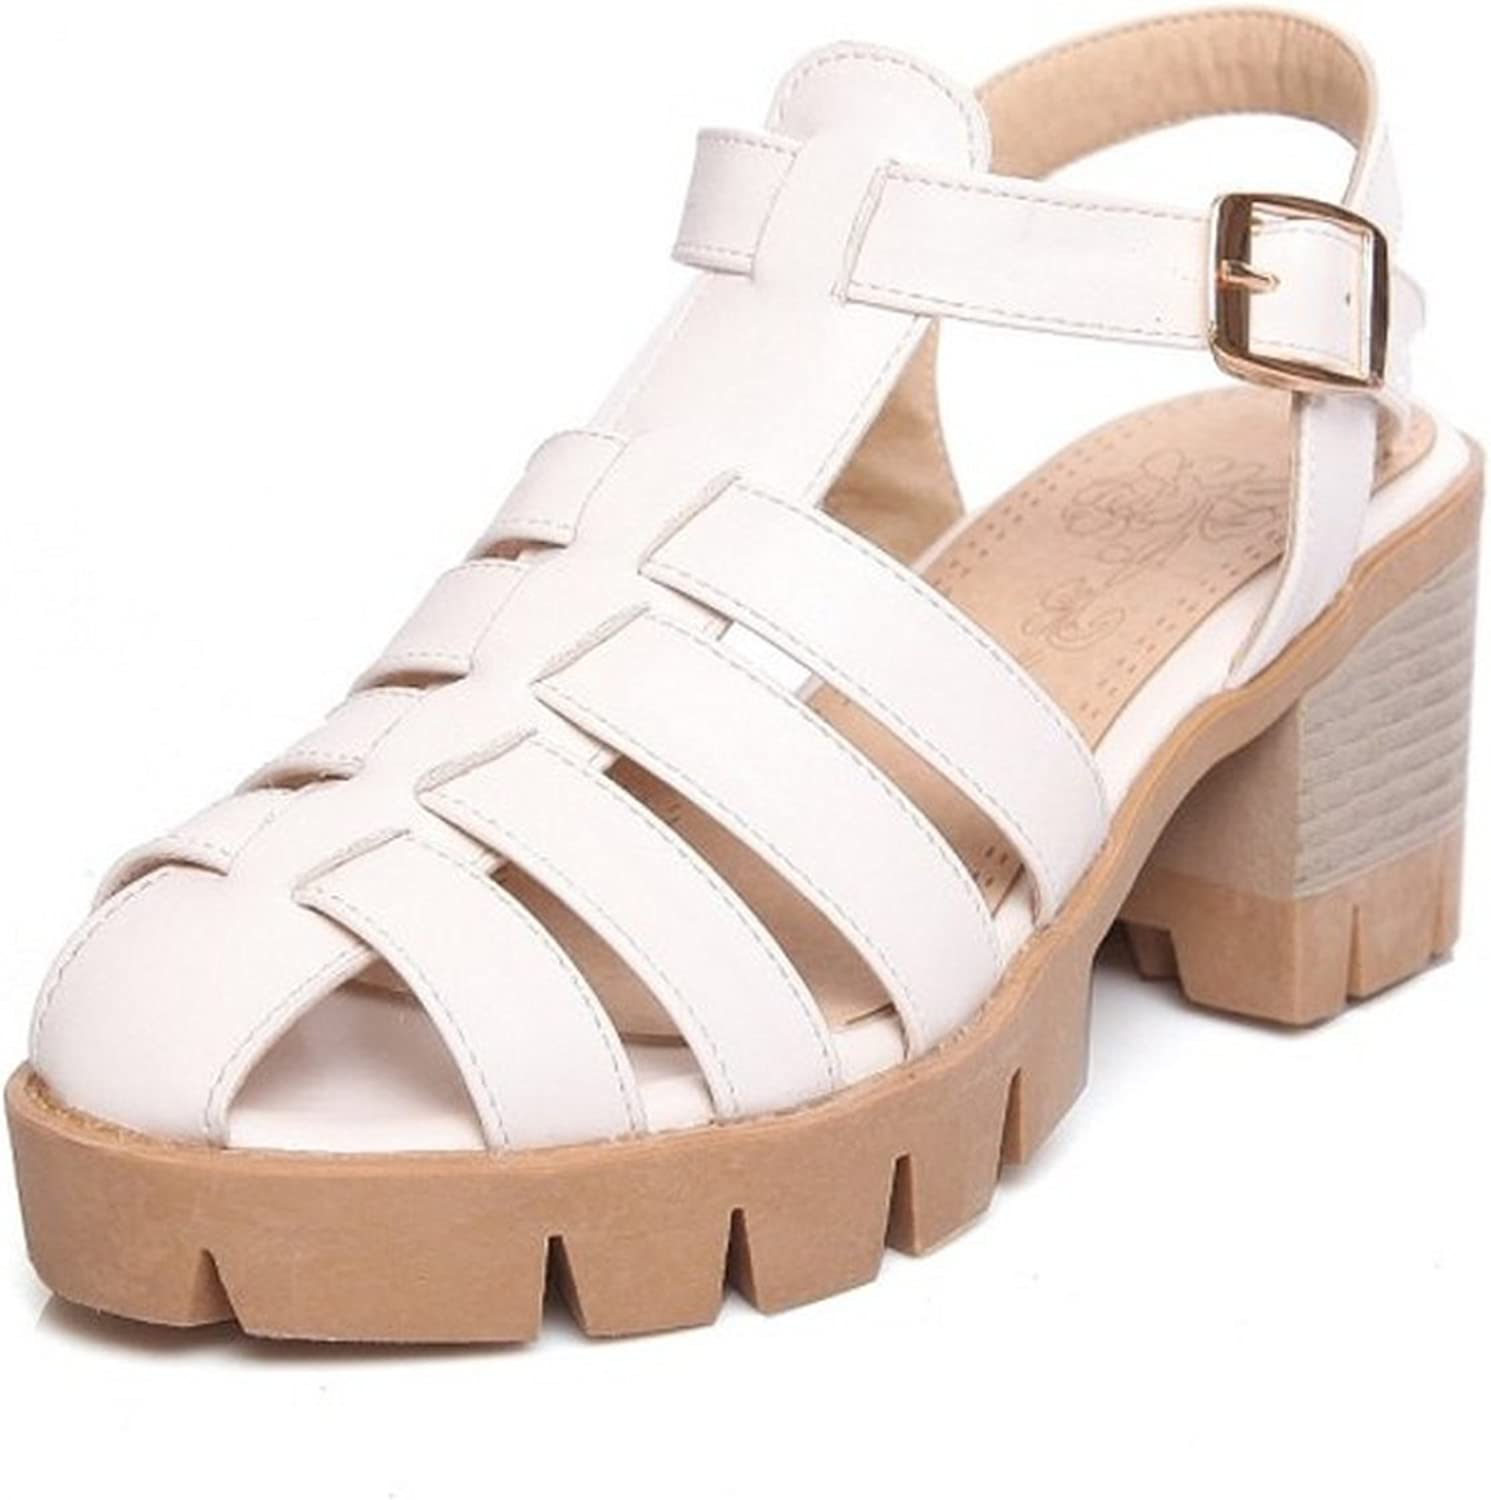 Nerefy Leisure Big Size 33-43 Platform Women Sandals Casual Square Heels Ankle Strap Gladiator shoes